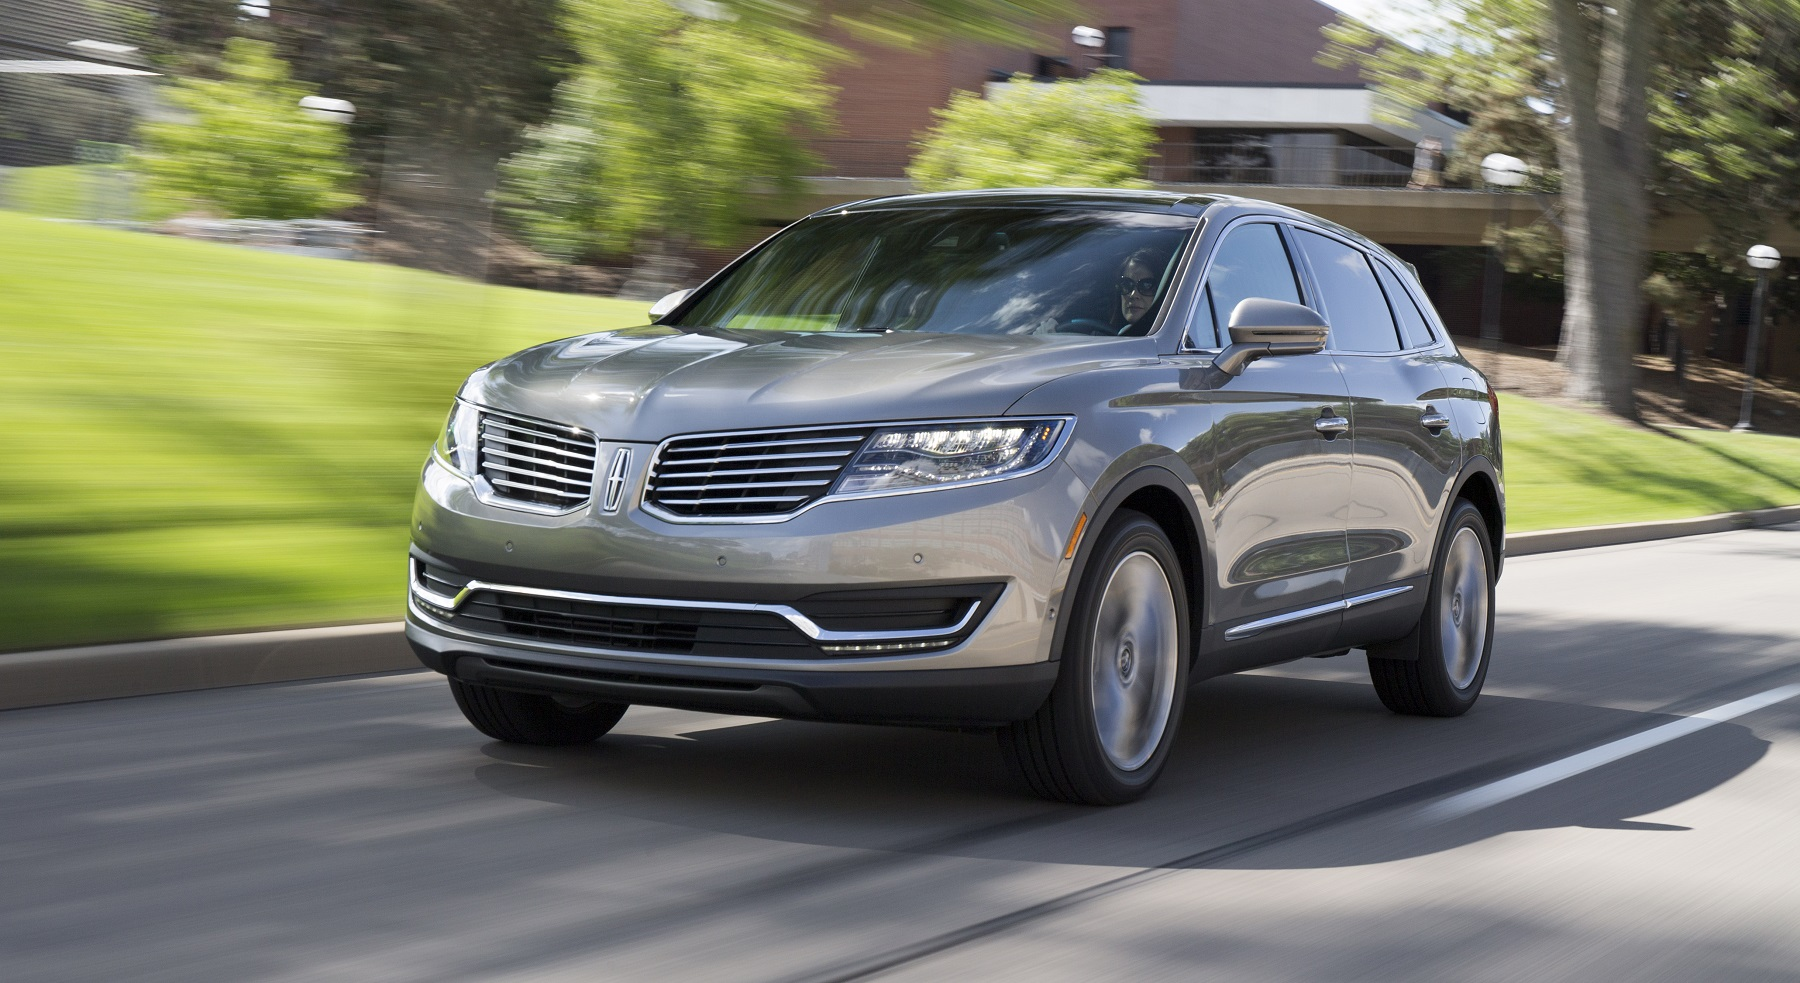 lincoln mkx crossover is all new for 2016 new on wheels groovecar. Black Bedroom Furniture Sets. Home Design Ideas